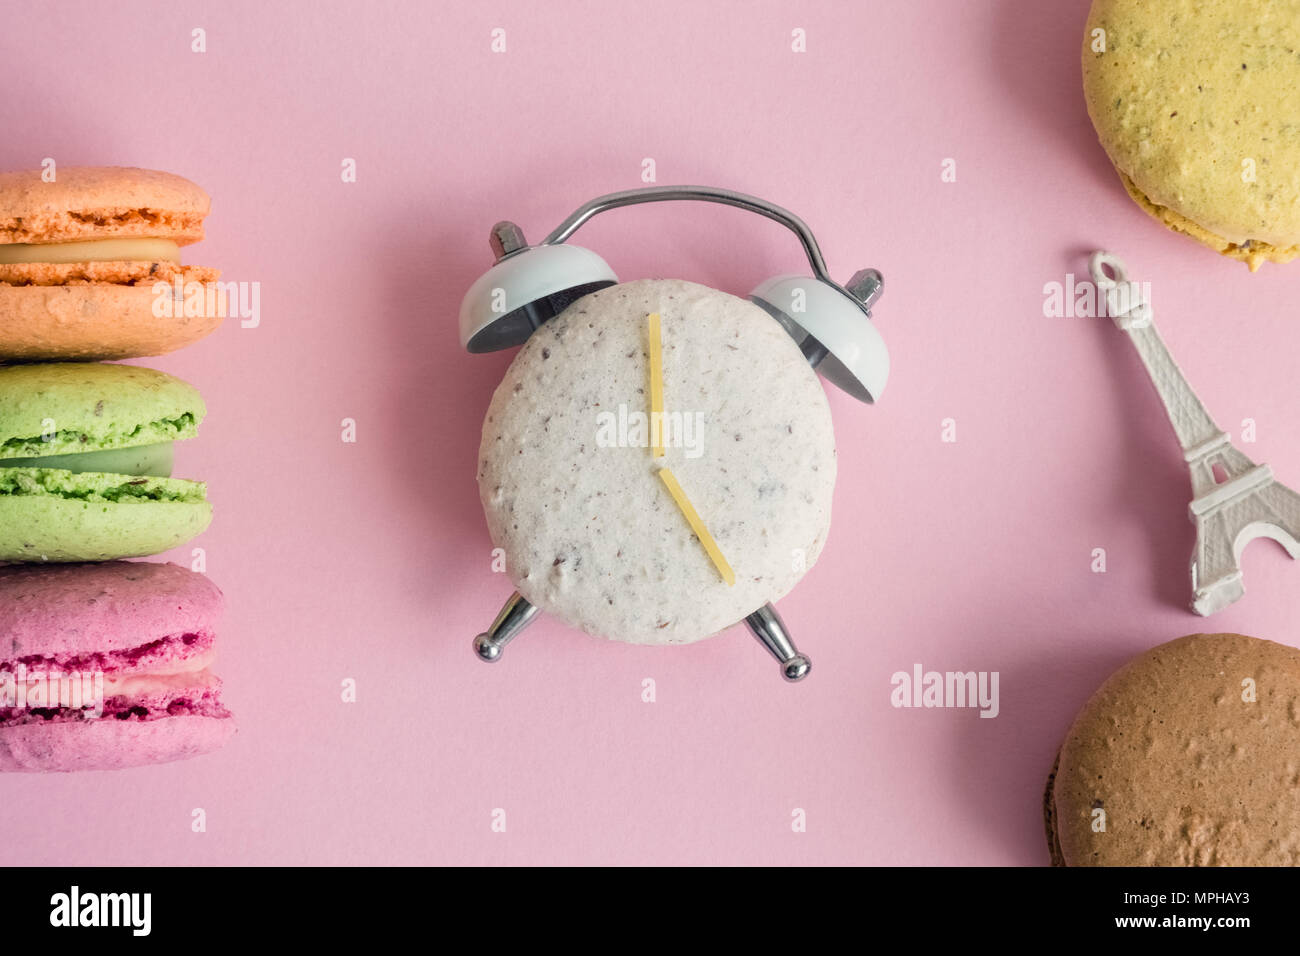 Flat lay of colorful macarons and Eiffel Tower miniature model on pastel pink background. One of macaroons in shape of alarm clock with clock hands ma Stock Photo